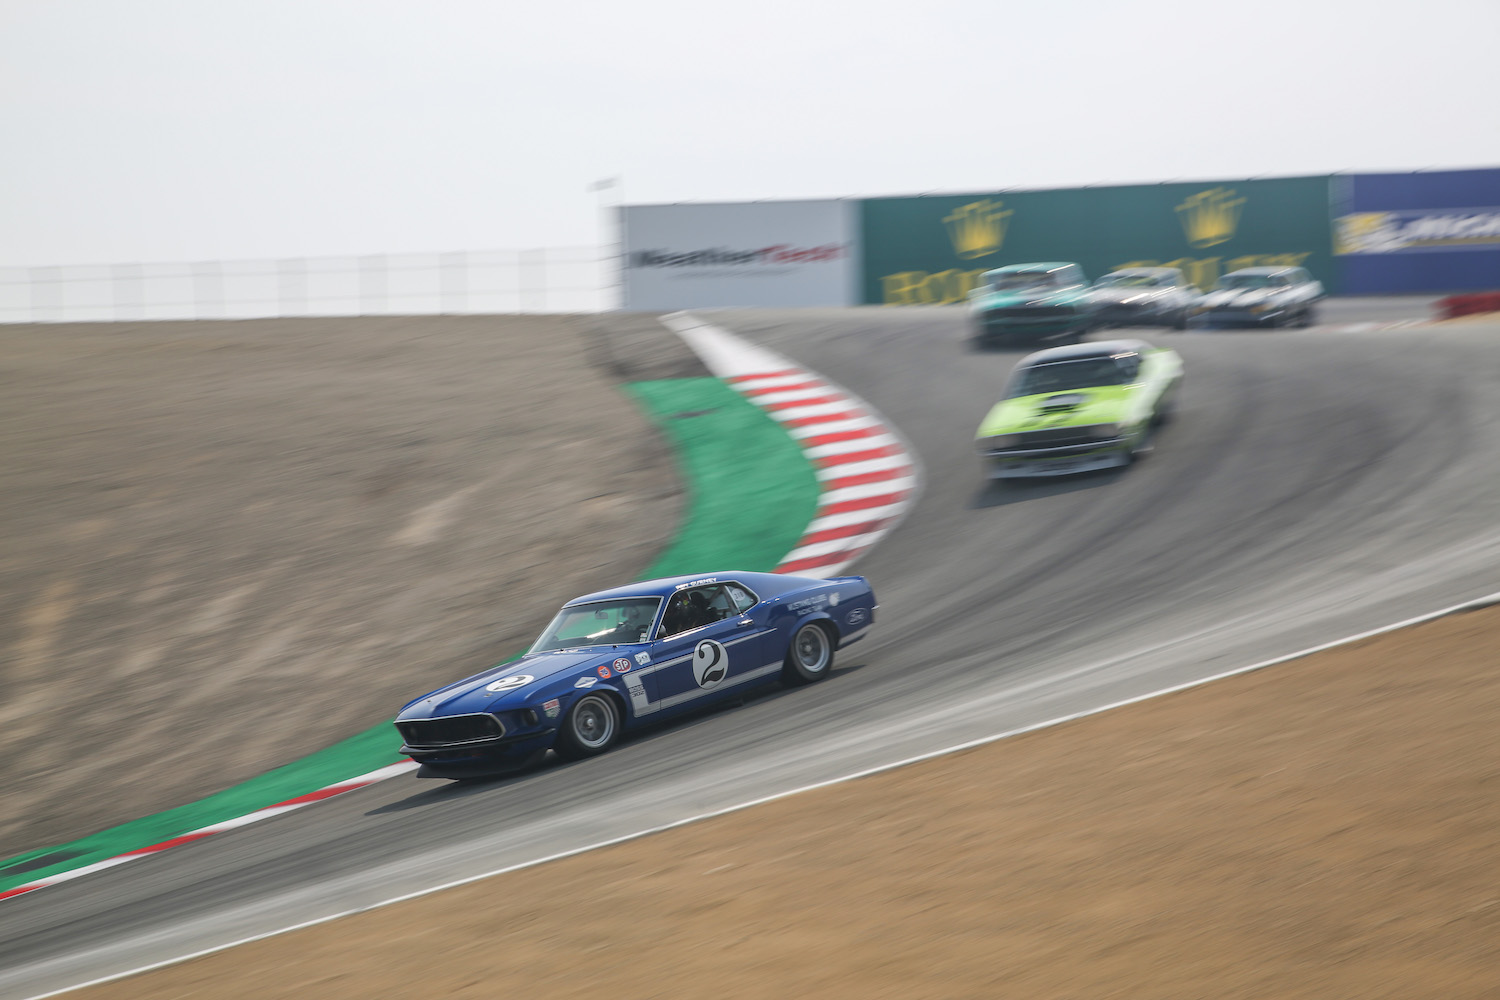 vintage car racing at laguna seca raceway track